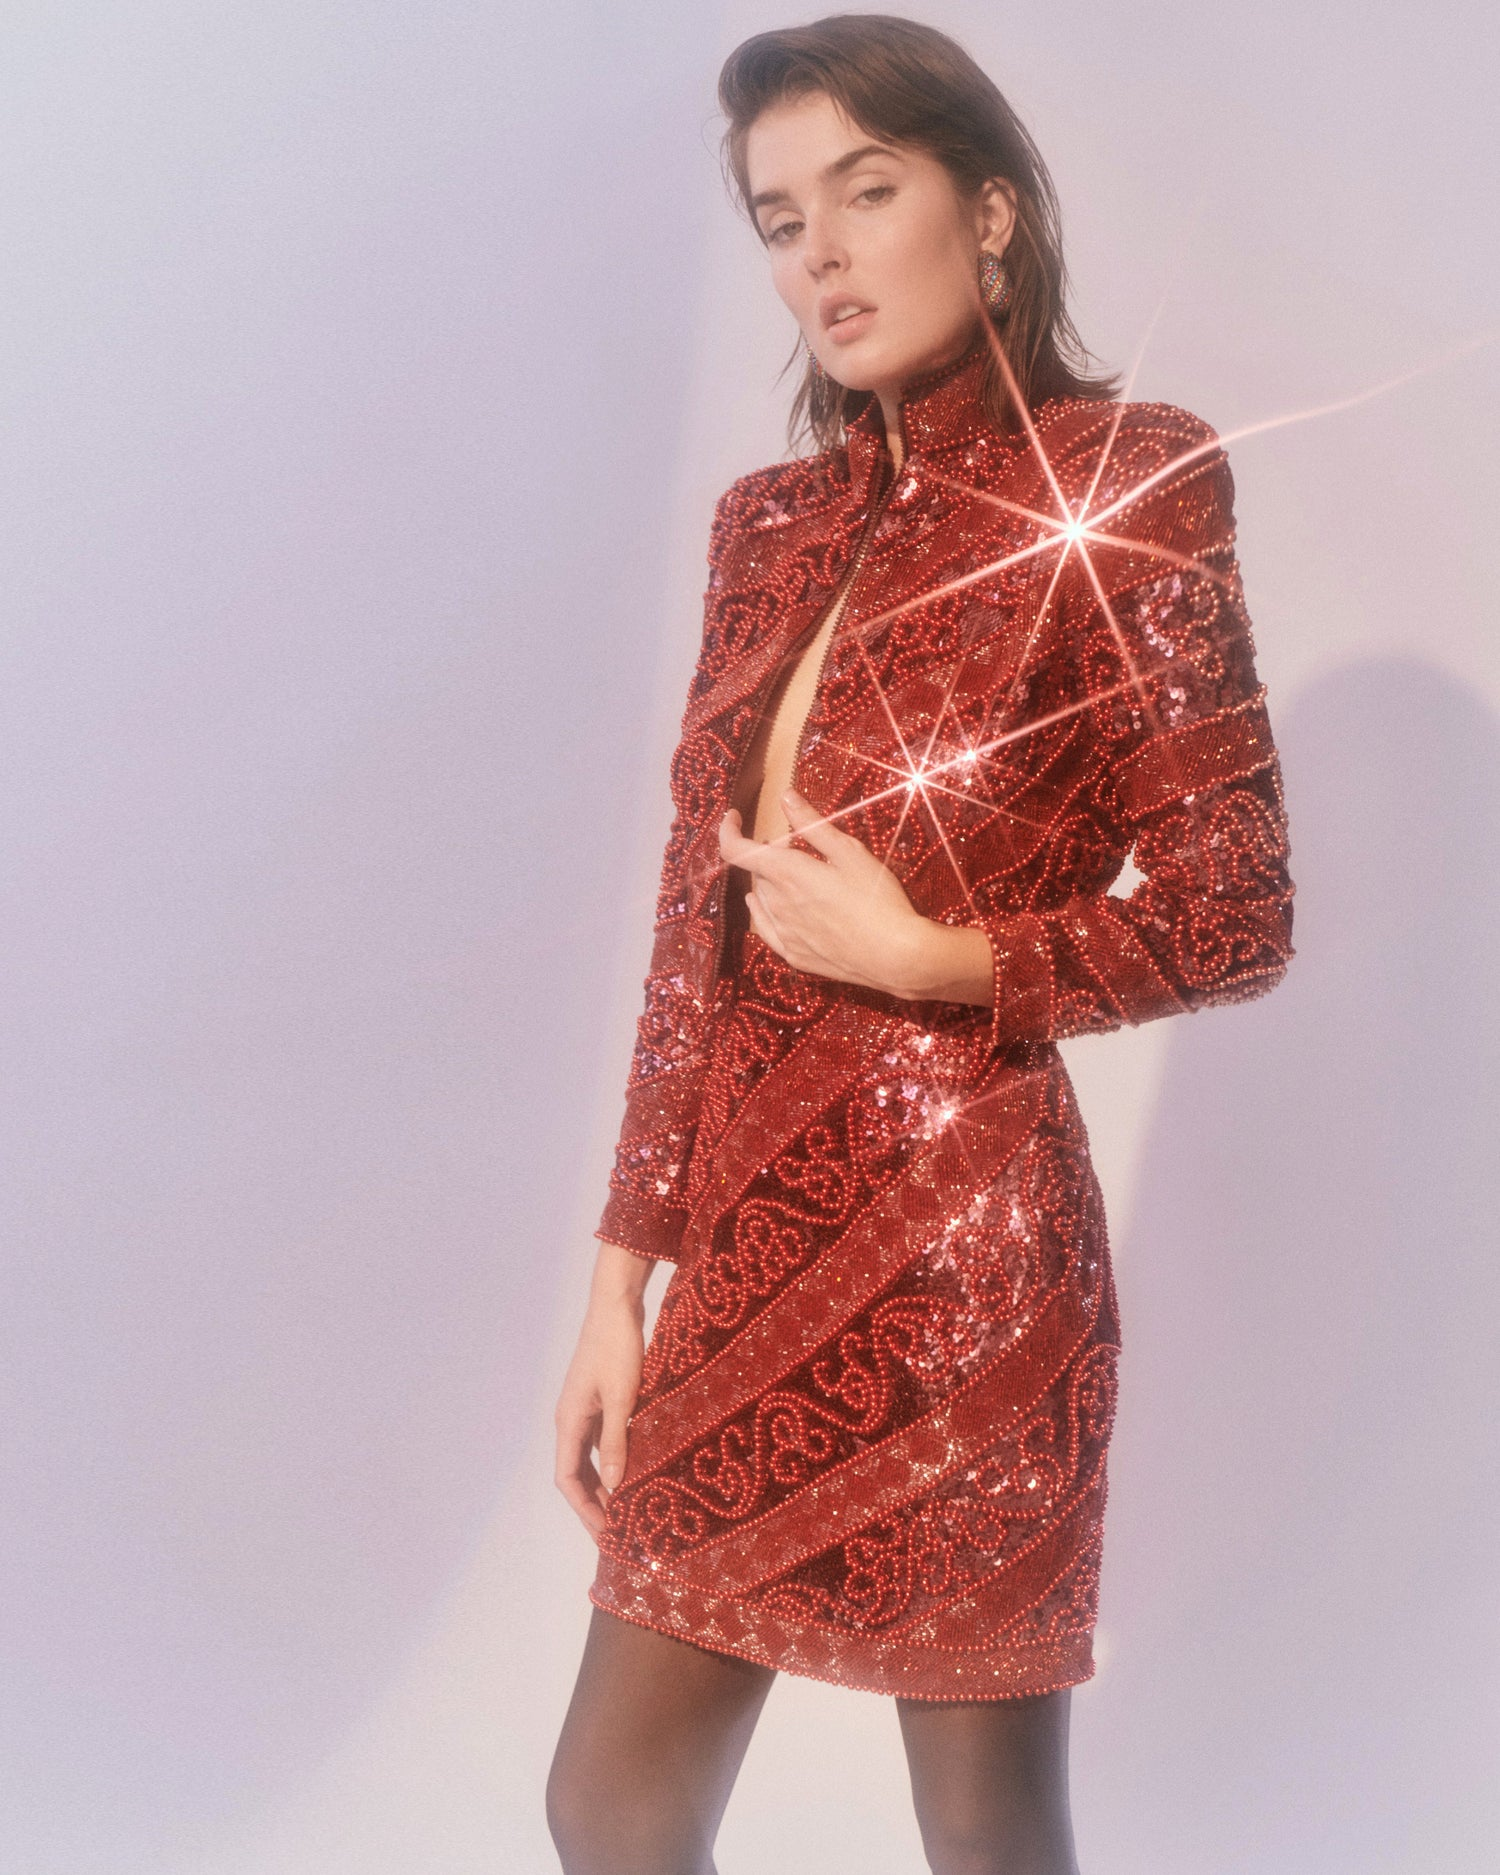 Little Red Corvette // Beaded Sequin Set